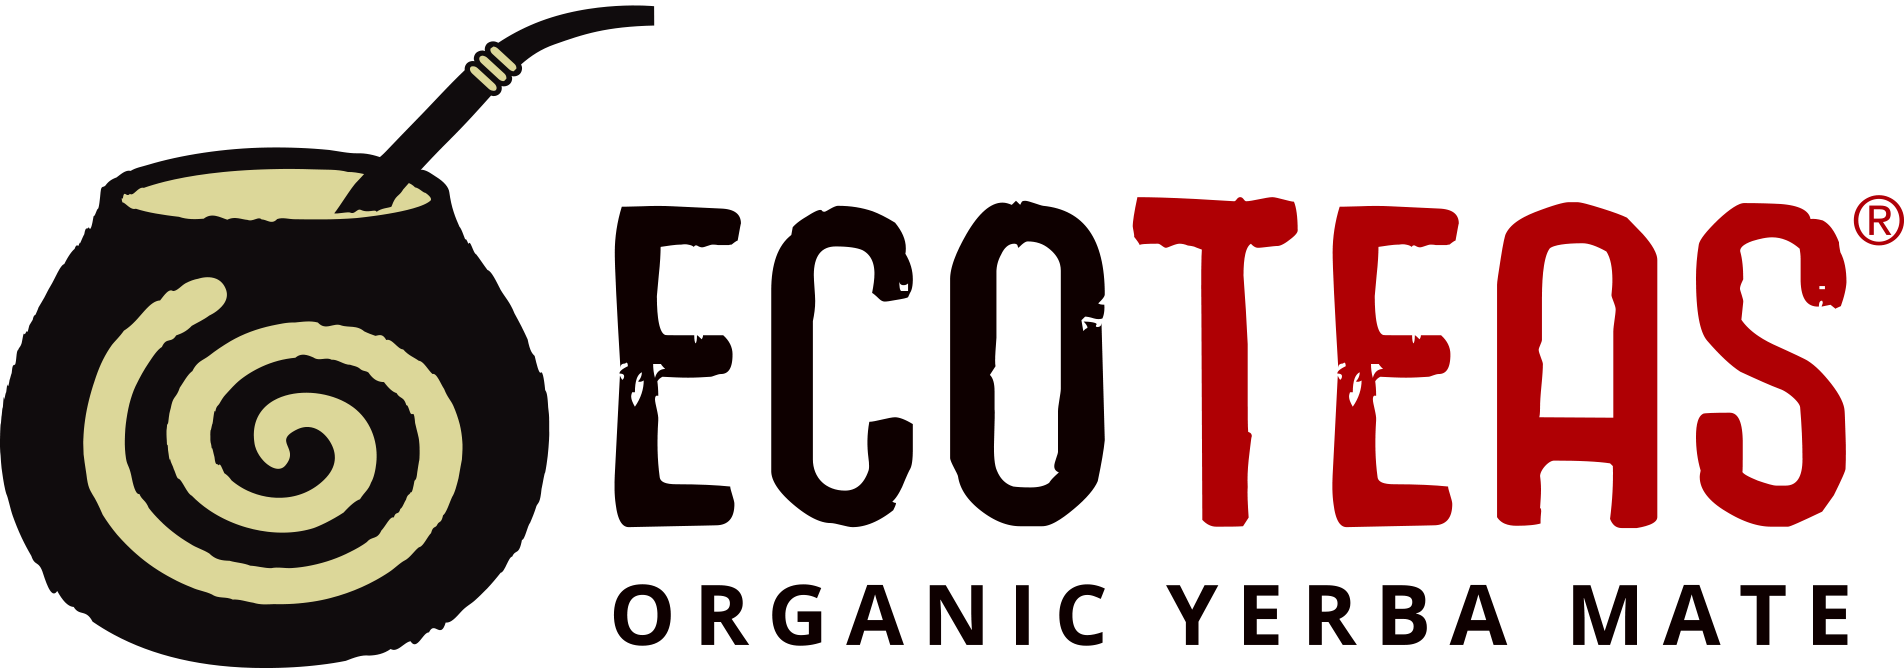 Eco Teas - organic and fair trade